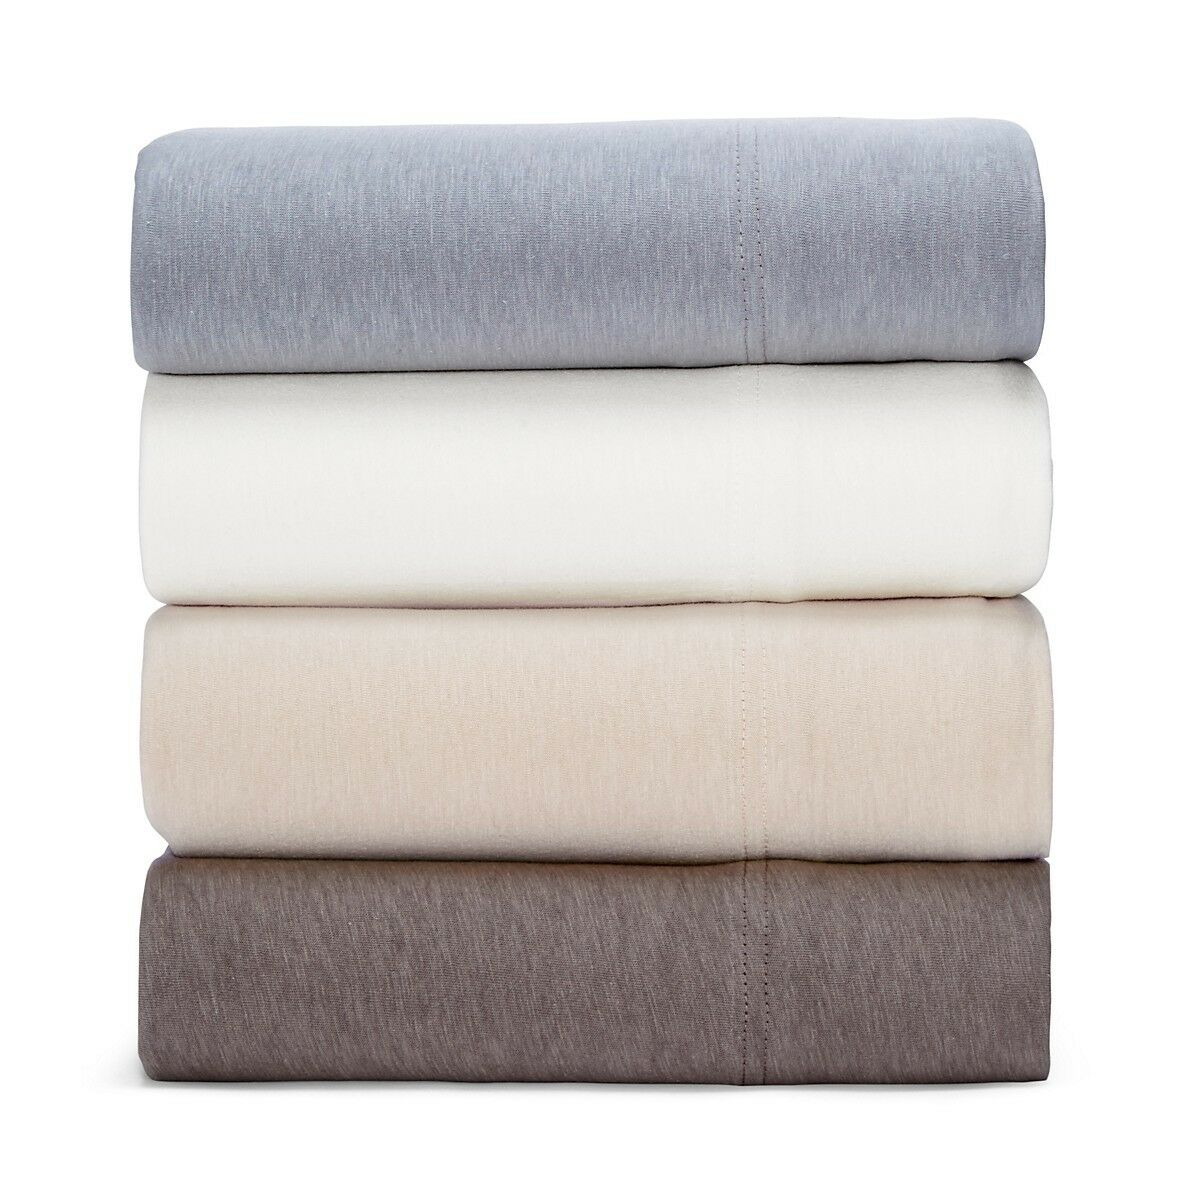 NEW Oake Bedding Jersey Collection 100% Cotton KING Sheet Set Weiß  175 G2781